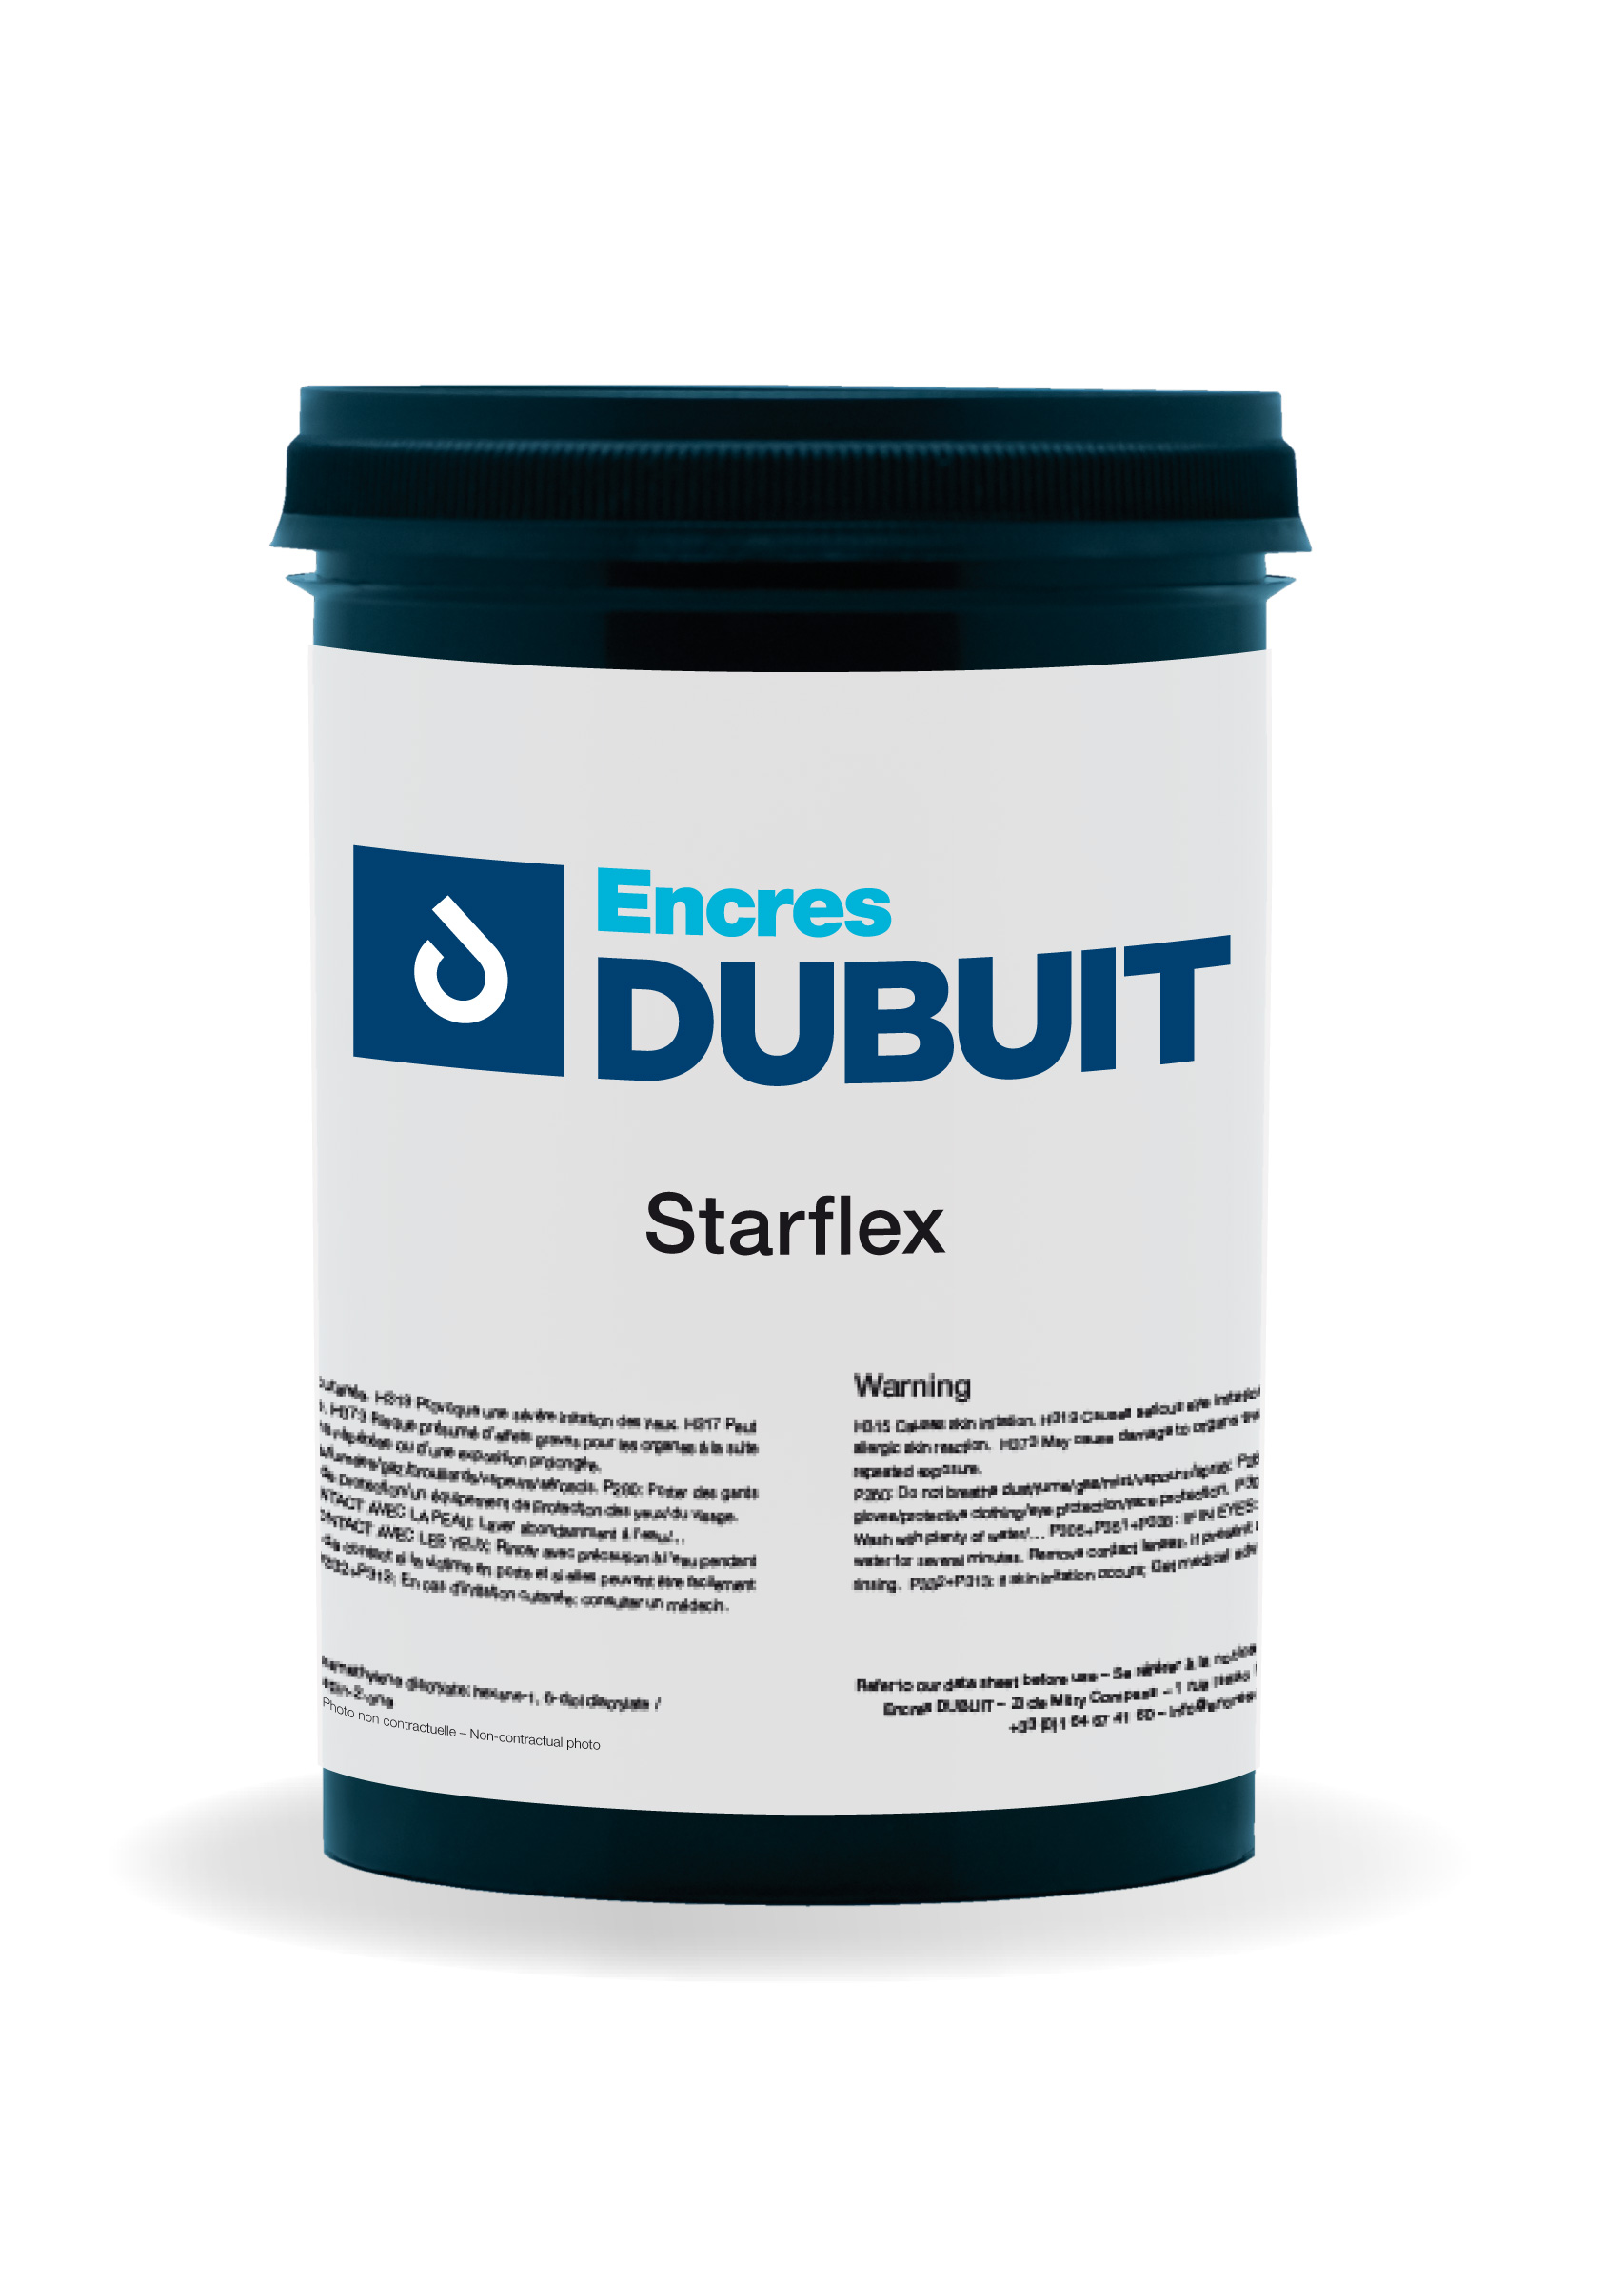 Serie Starflex Encres DUBUIT - UV Screen Printing Ink